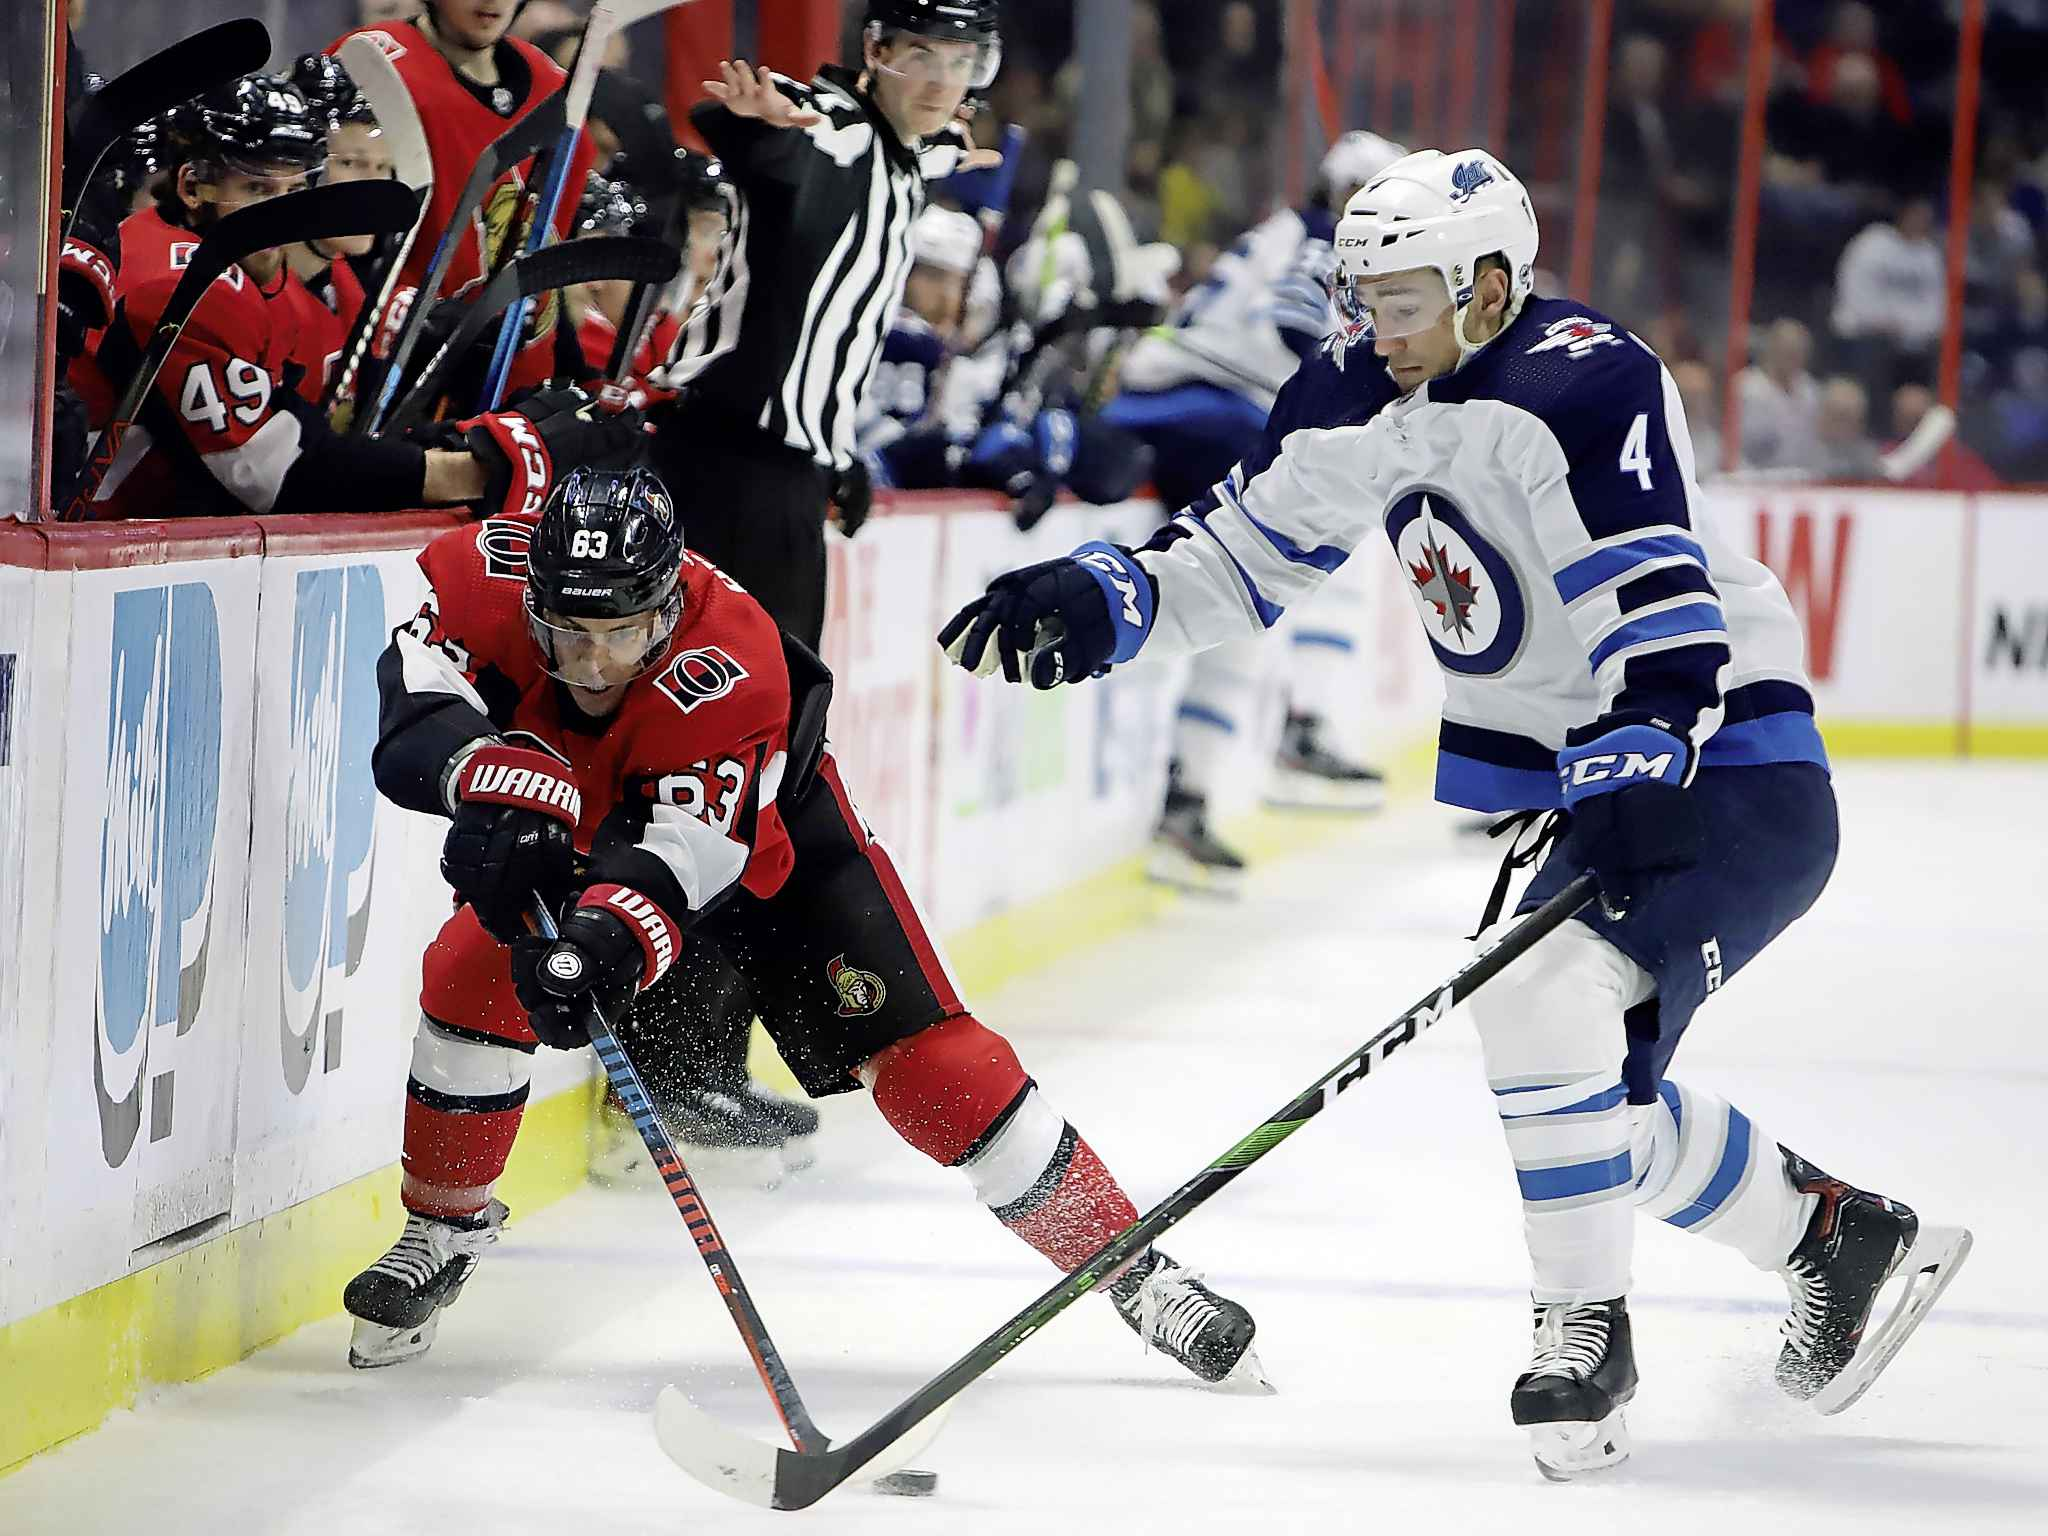 Ottawa Senators right wing Tyler Ennis and Winnipeg Jets defenceman Neal Pionk battle for the puck during the second period.